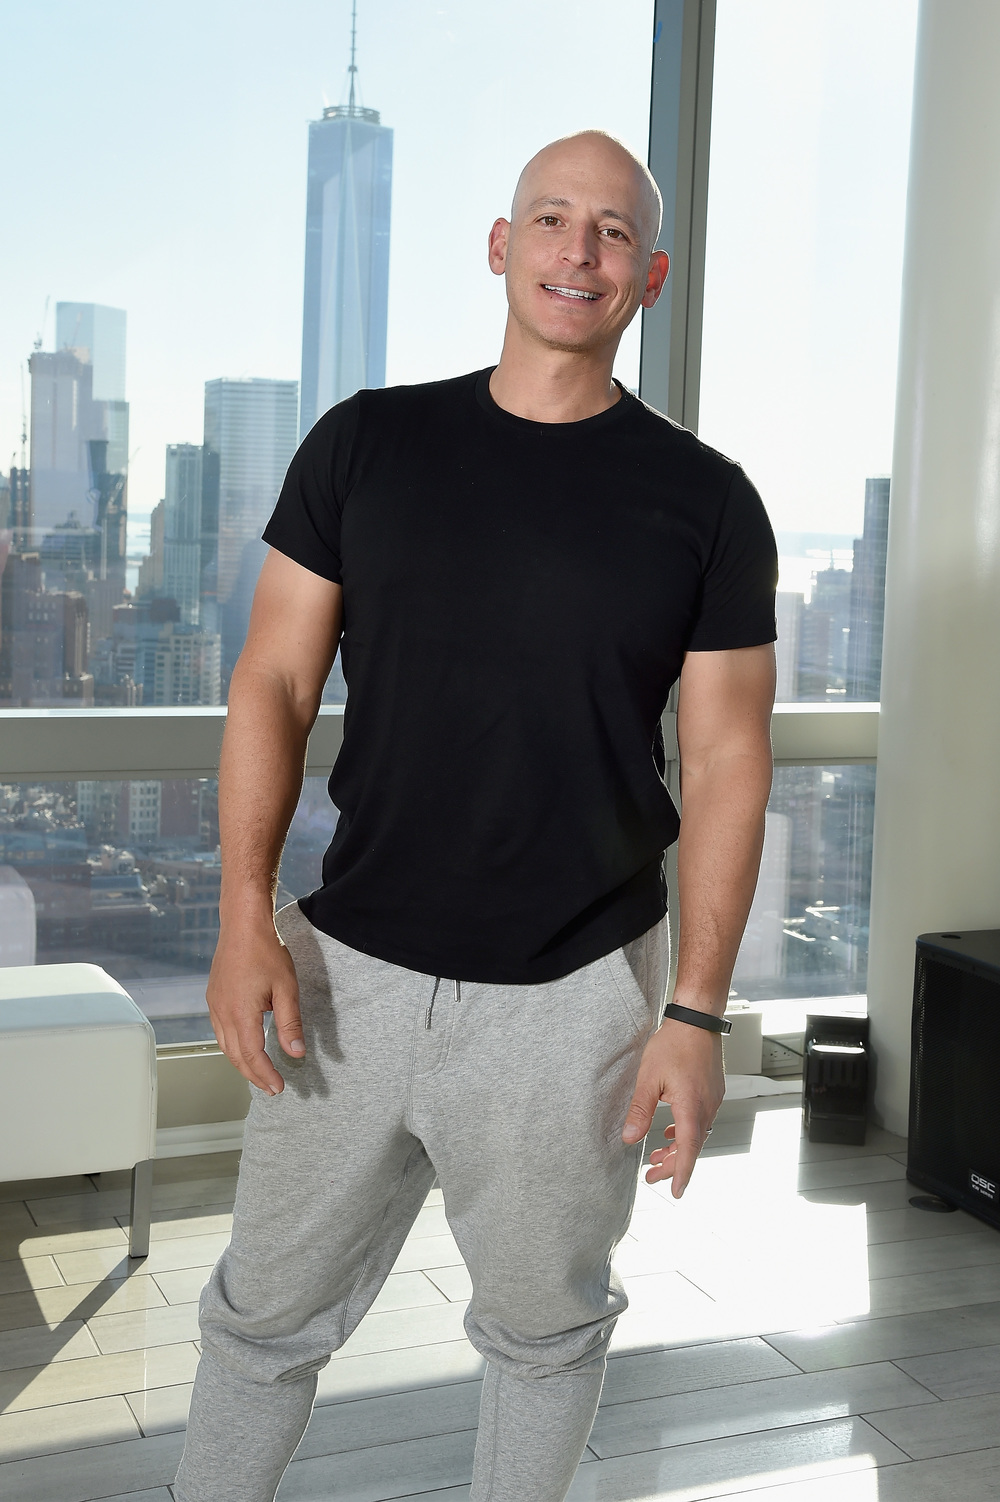 Harley Pasternak, trainer for film, TV and music celebrities such as Katy Perry, Megan Fox and Kanye West.